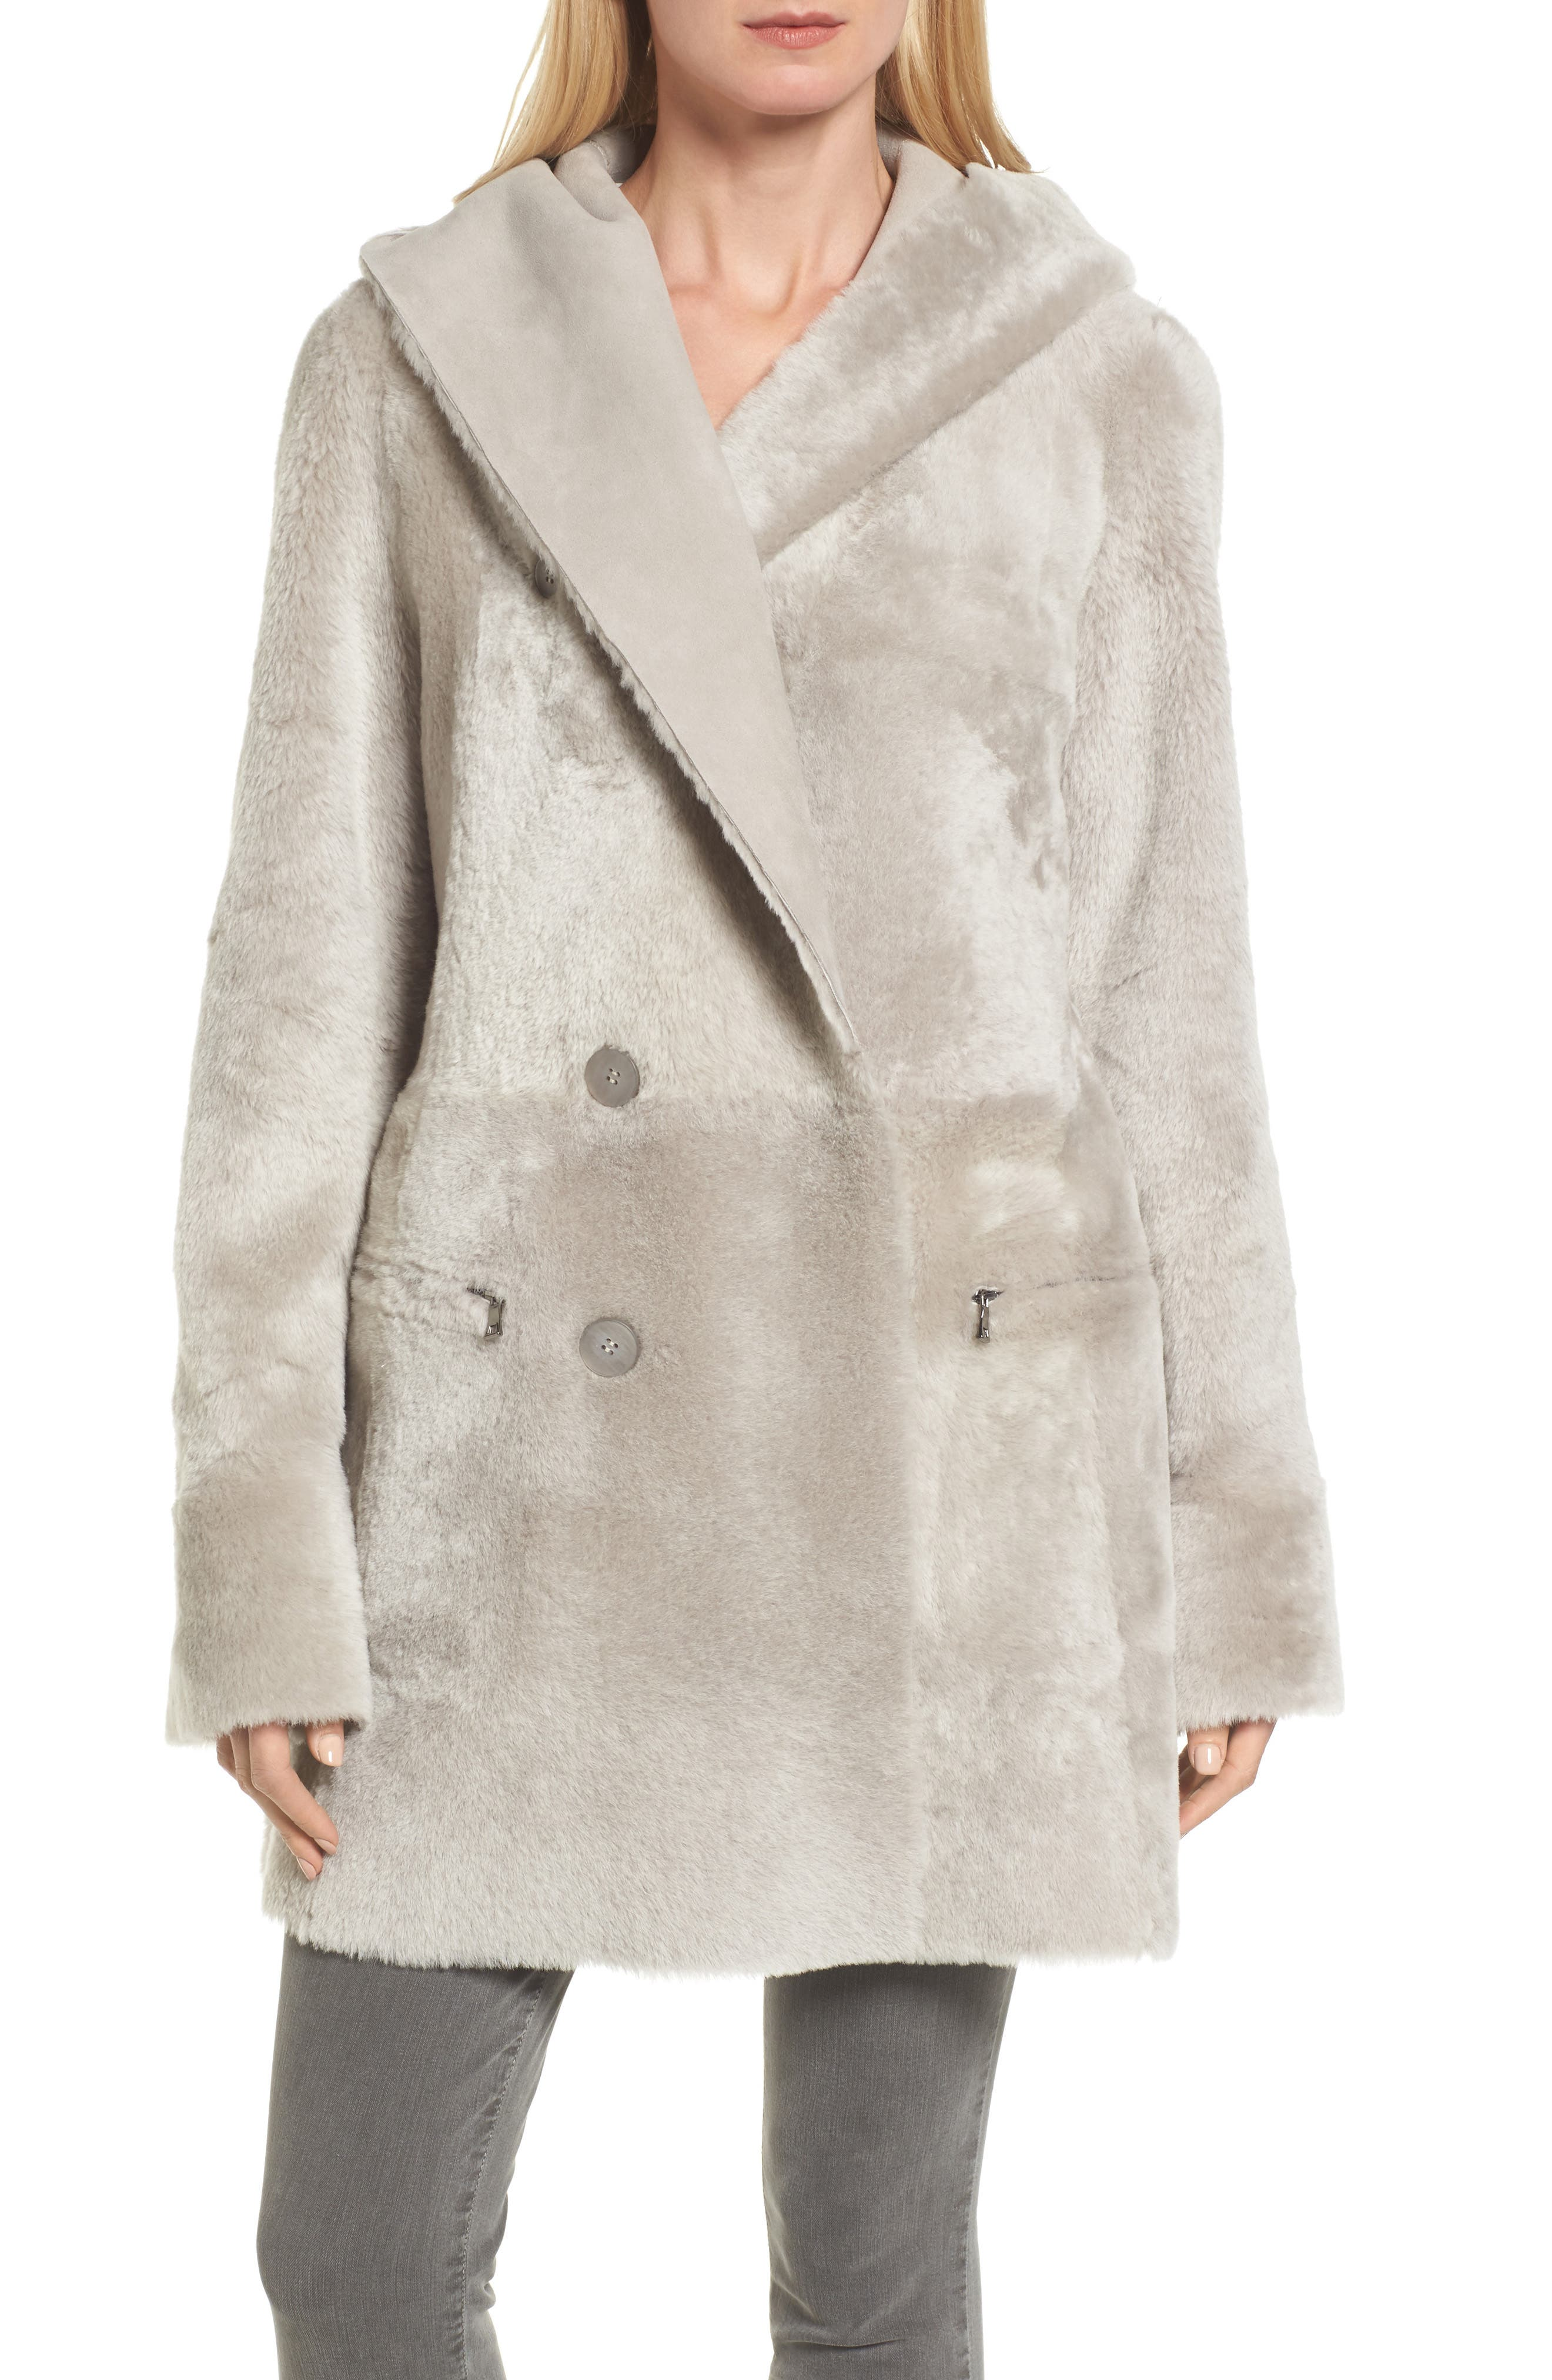 Patch Genuine Shearling Coat,                             Alternate thumbnail 6, color,                             Light Grey